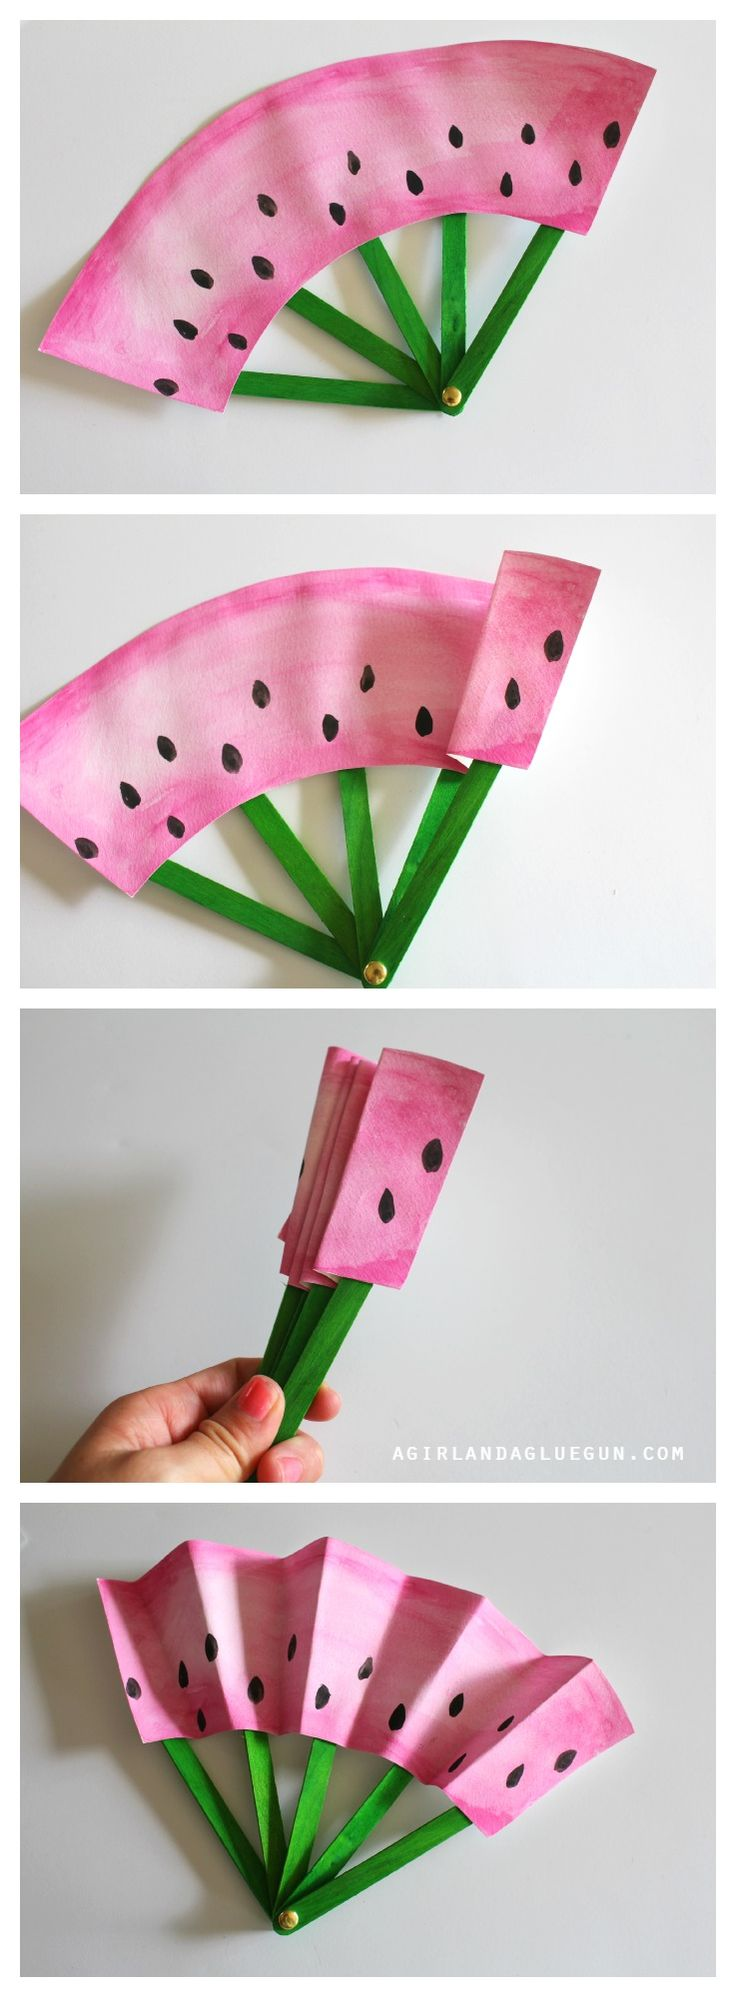 494 best Craft Ideas images on Pinterest | Sunday school crafts ...